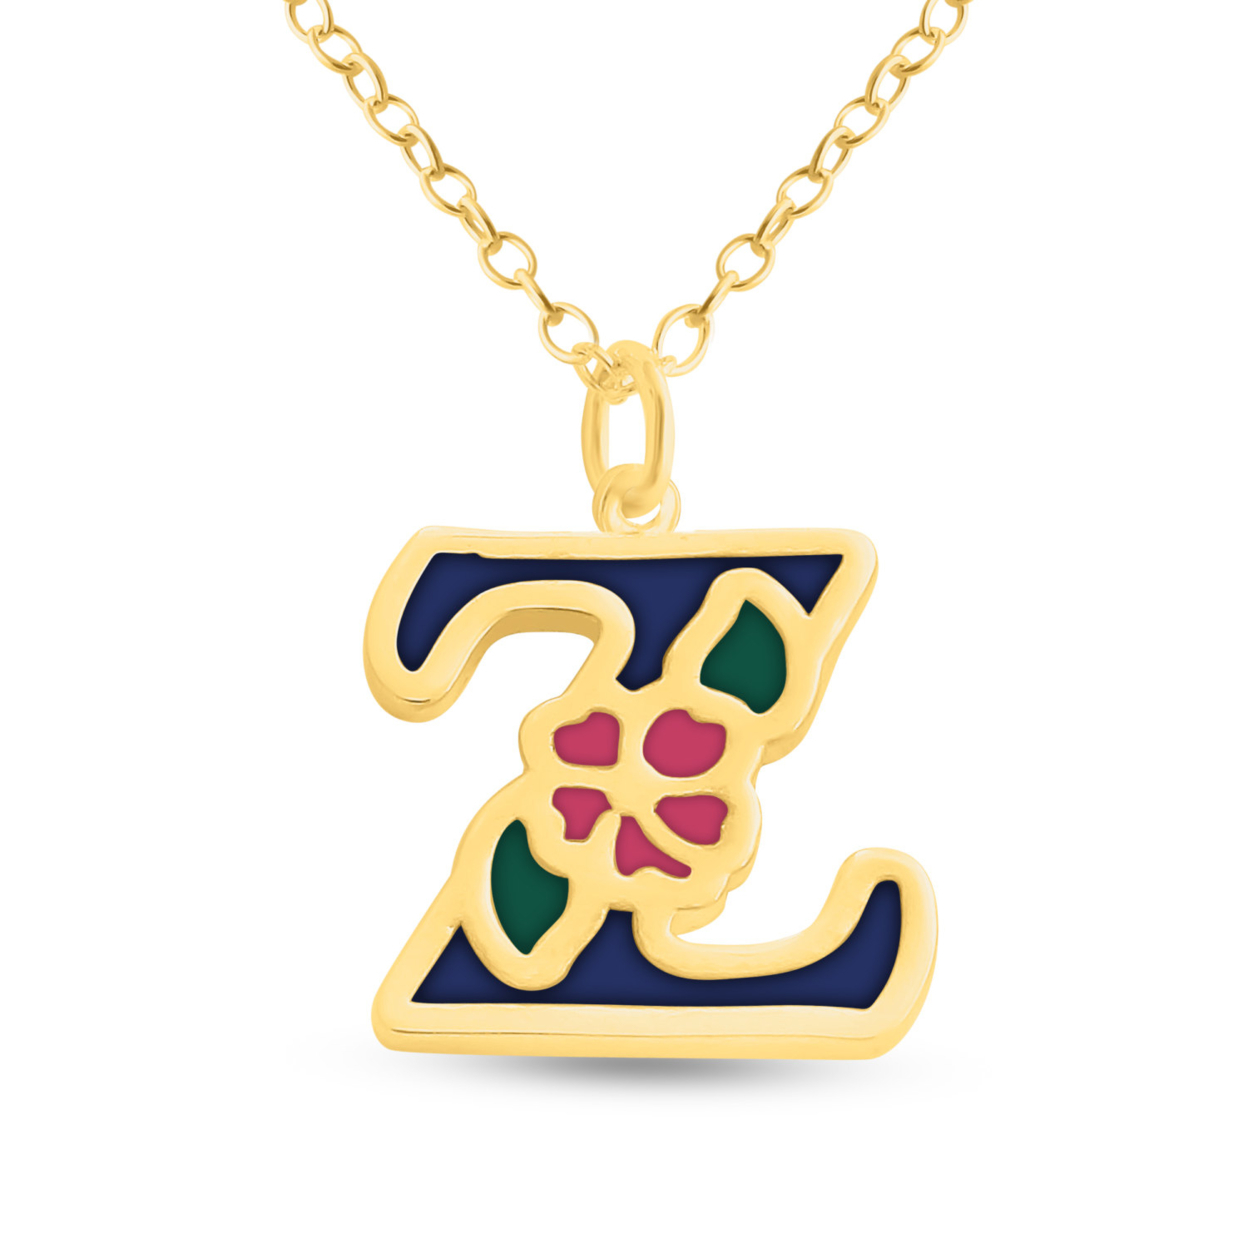 Blue Enameled Initial Letter Z With Flower Multi Colors Charm Pendant Necklace #14k Gold Plated Over 925 Sterling Silver #azaggi N0854g_z_v1 12 Child